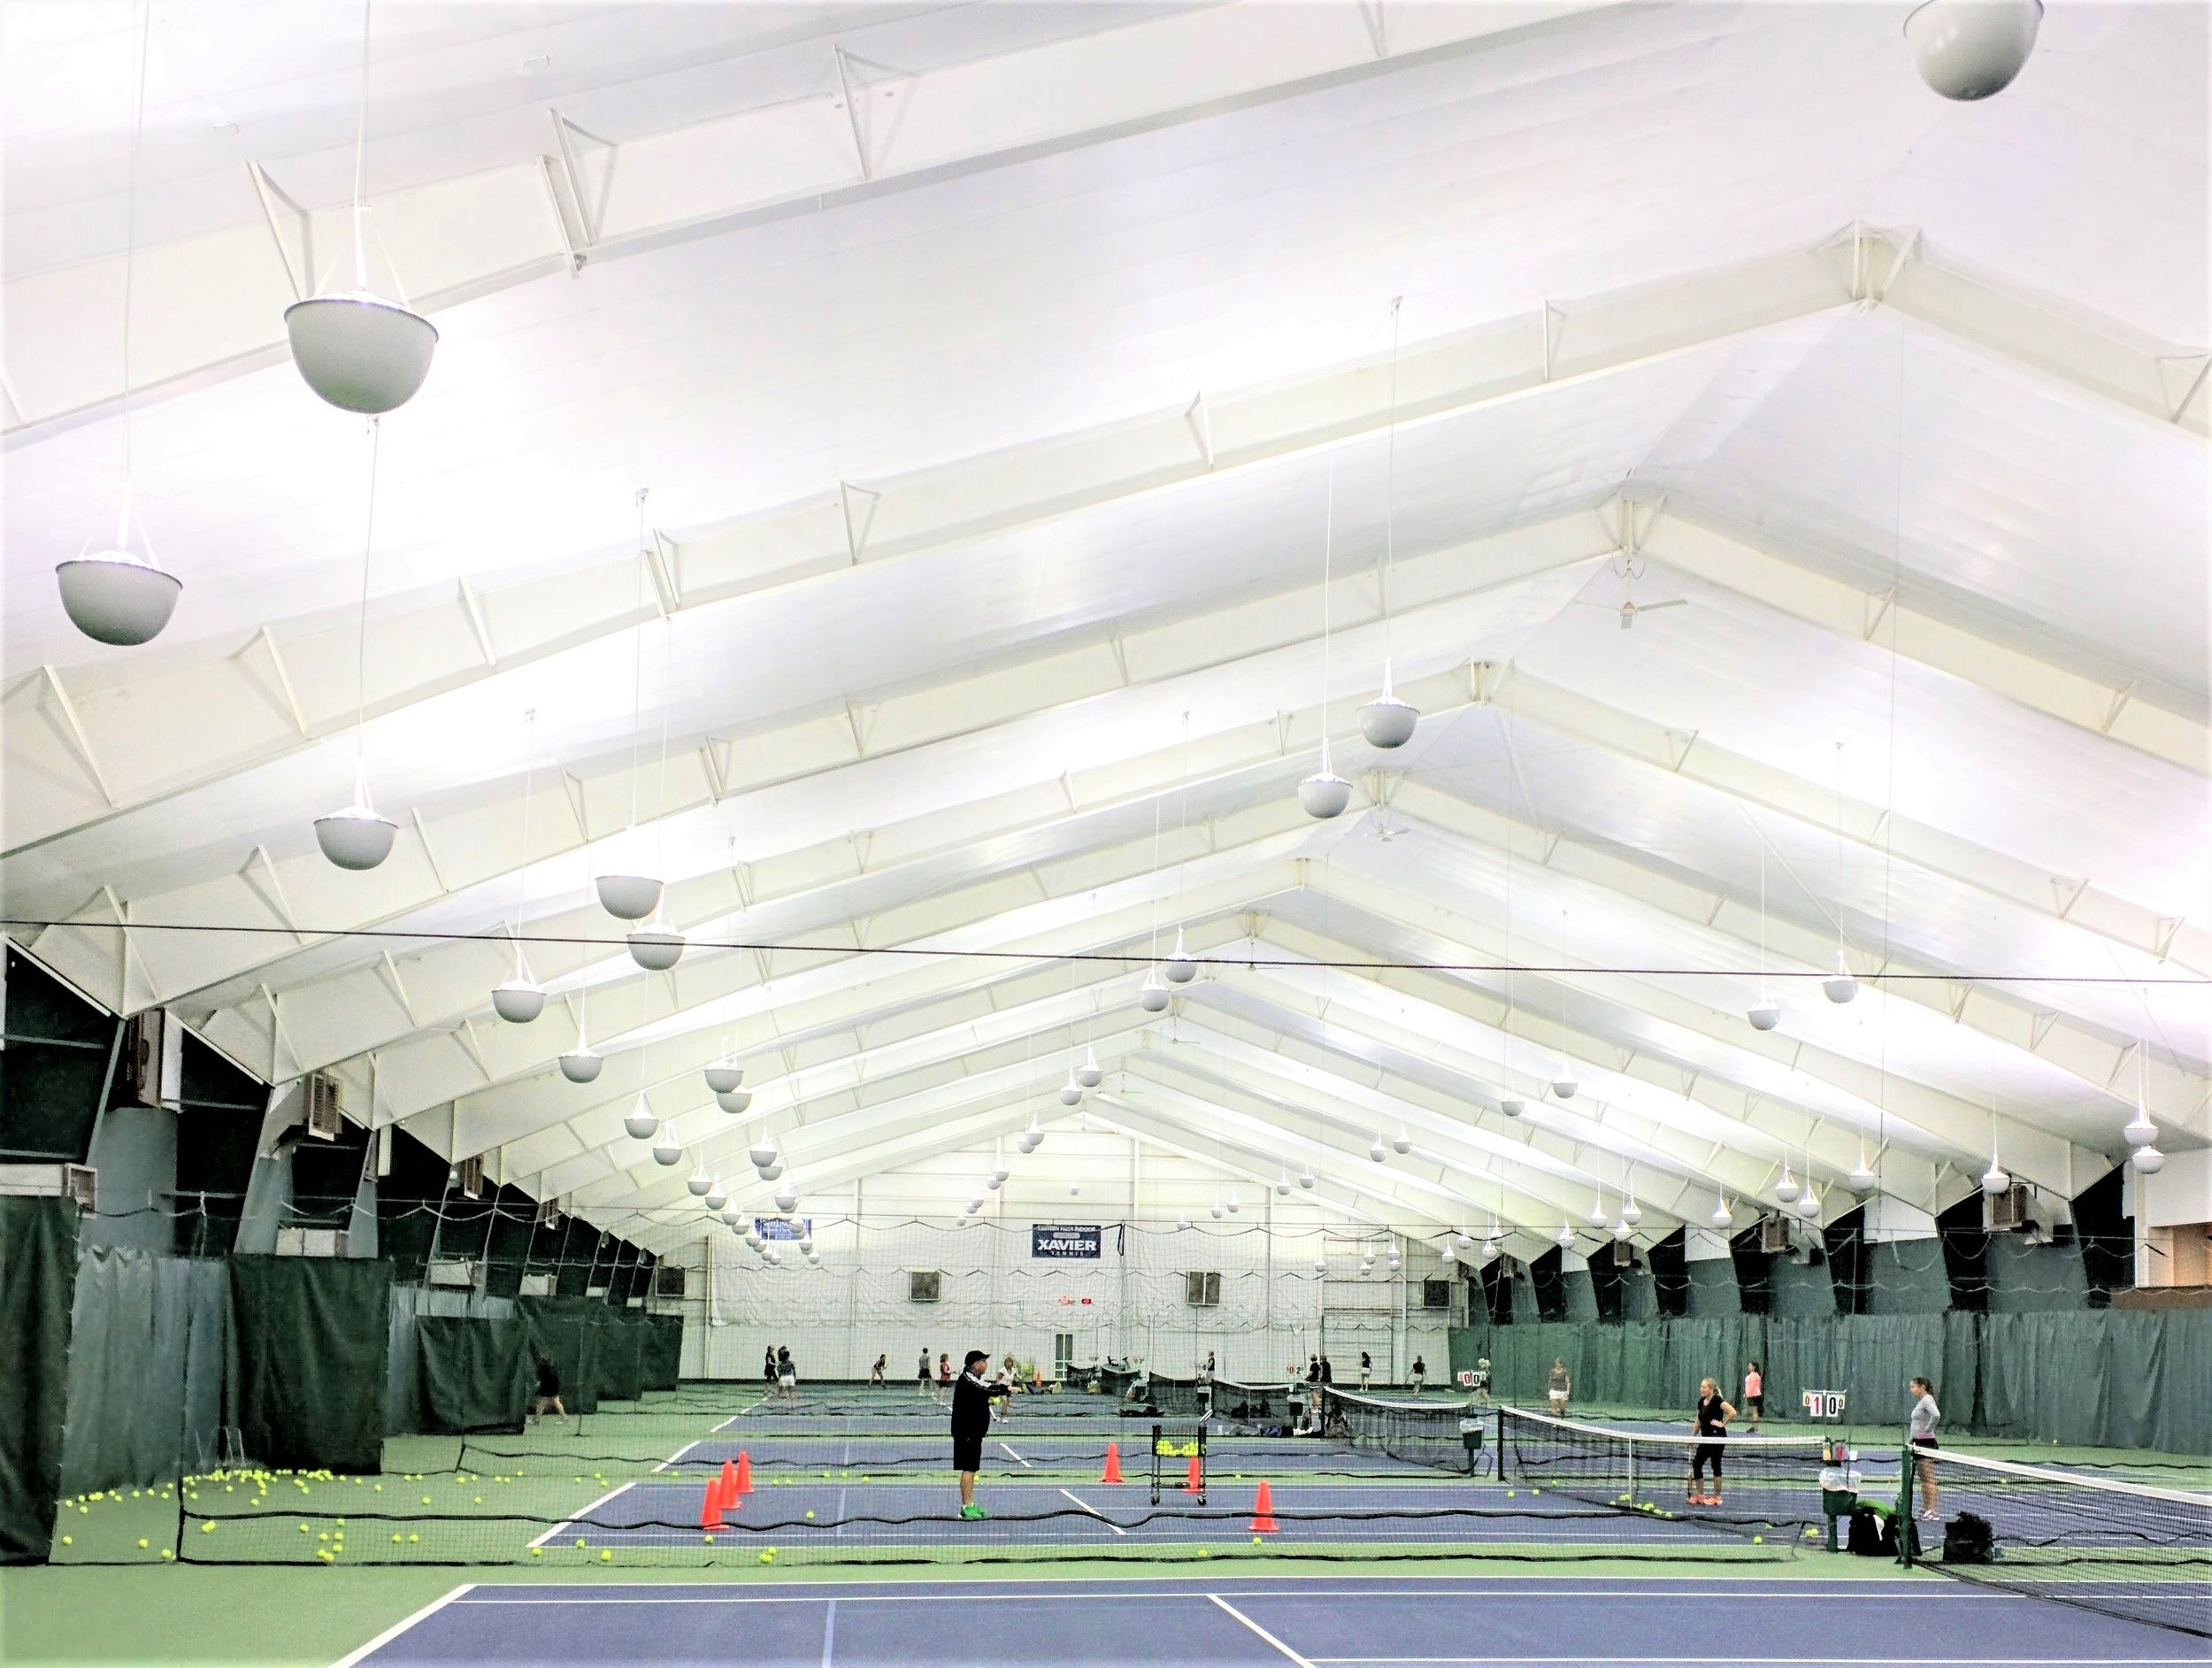 Eastern Hills Indoor Tennis Club - Cincinnati, OH  LED Court Lighting Purchase  Rebate Awarded: $22,050  Annual Savings: $24,305  Net ROI: 2.6 YRS